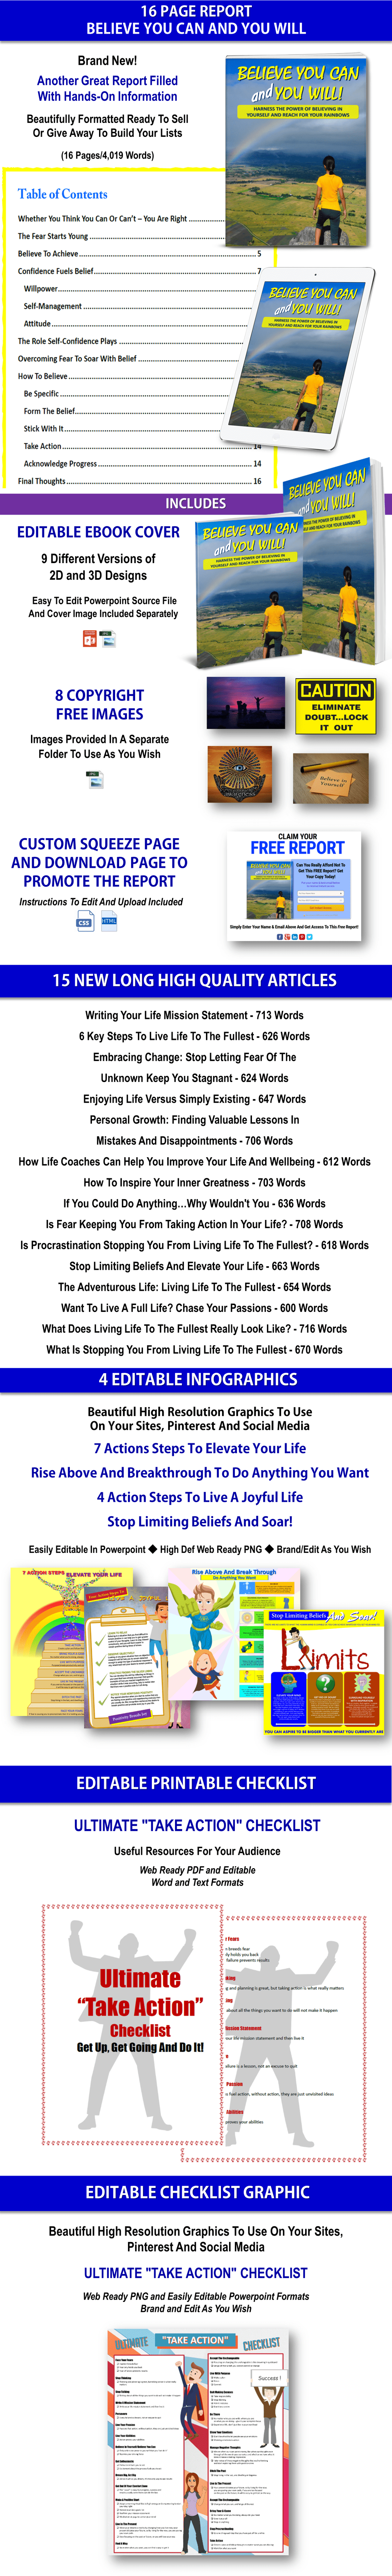 Self-help, take action in your life PLR